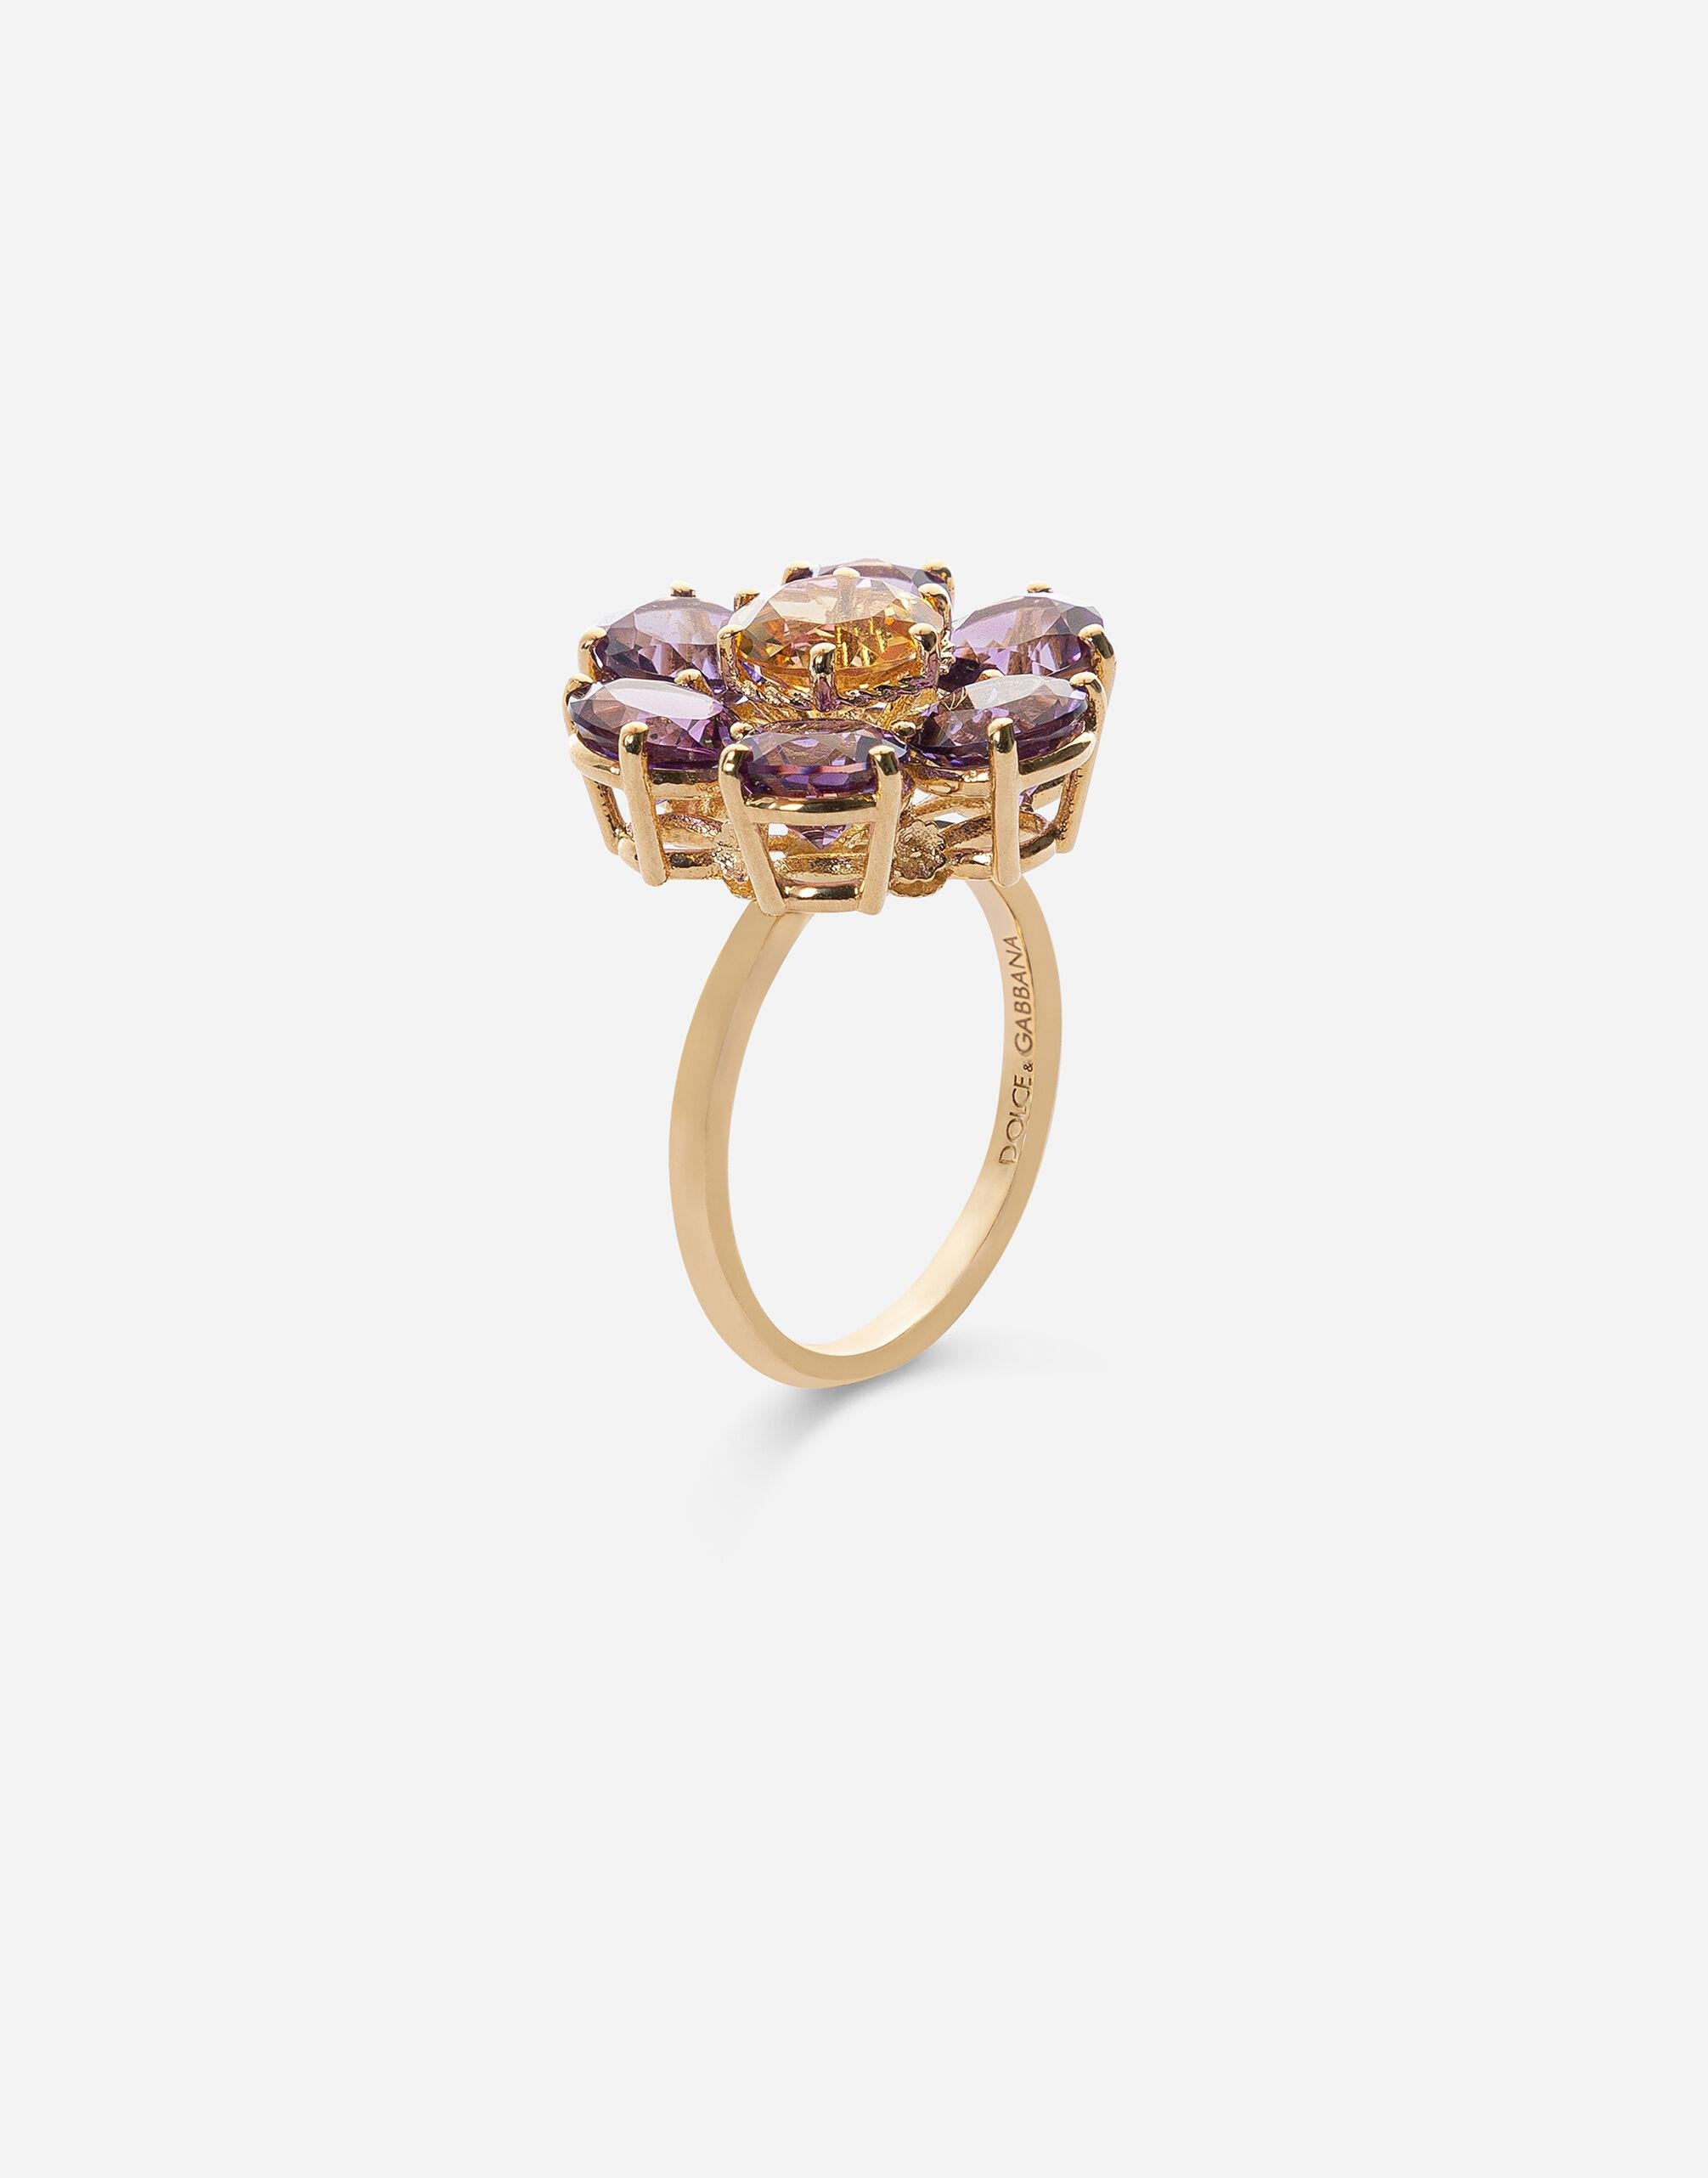 Spring ring in yellow 18kt gold with amethyst floral motif 1